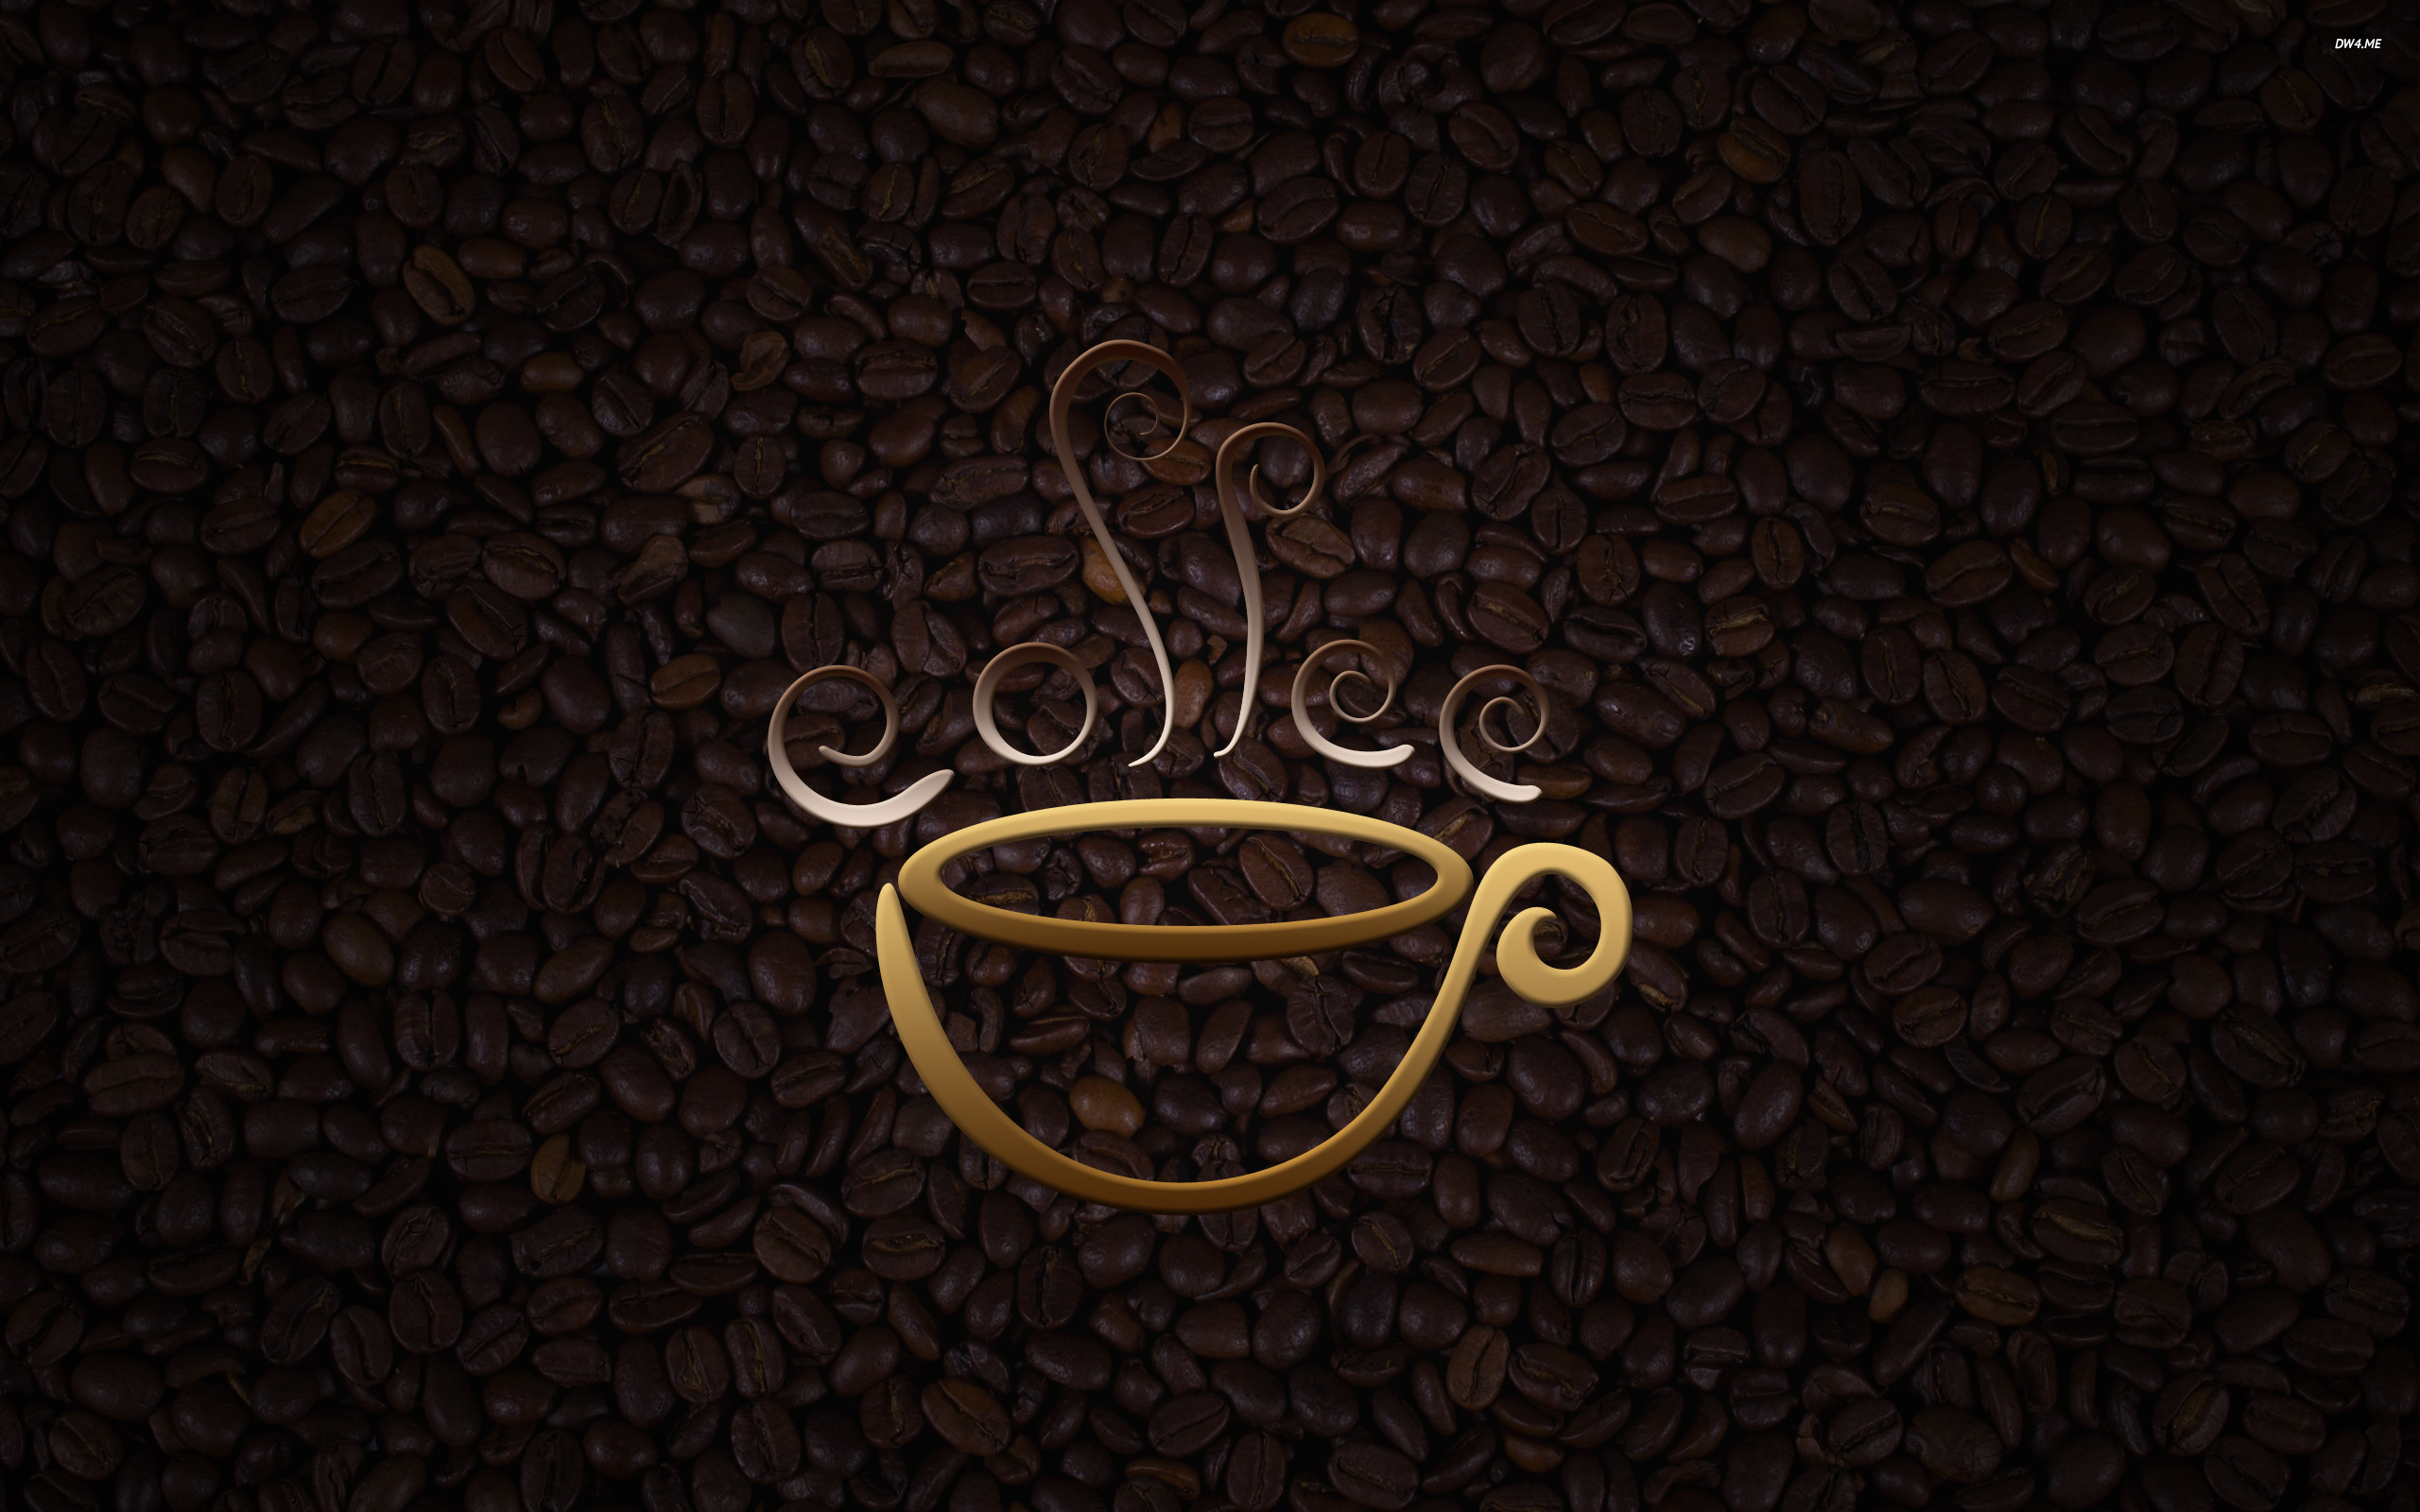 Coffee wallpaper - Digital Art wallpapers - #675